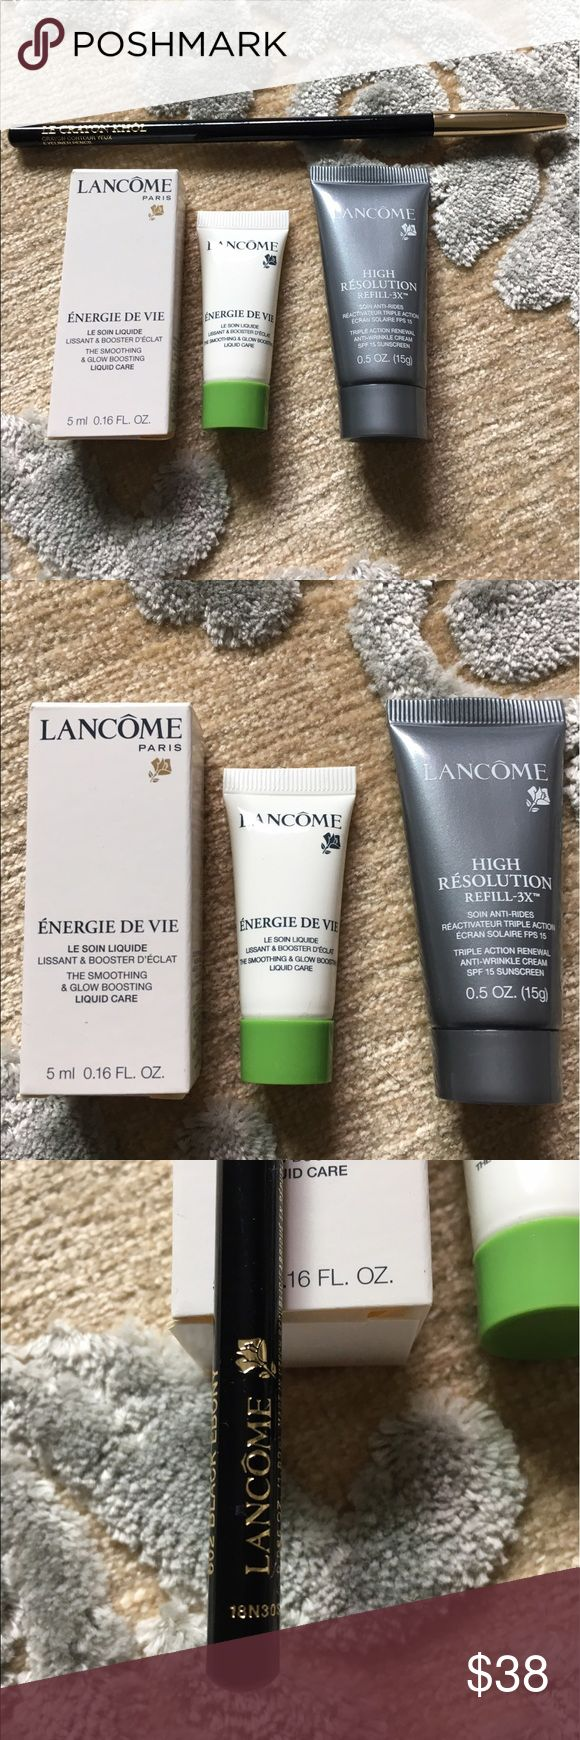 Lancome set *Unused & Unopened* 1- full size Le Crayon Kohl eyeliner pencil in 602 Black Ebony, 1- sample size Energie De Vie smoothing & glow boosting liquid 5 ml/.16 Fl oz, 1- High Resolution Refill 3x triple action anti-wrinkle w/ SPF 15 0.5 oz. Please see additional photos for retail price of full sized items. Never been used!! Lancome Makeup